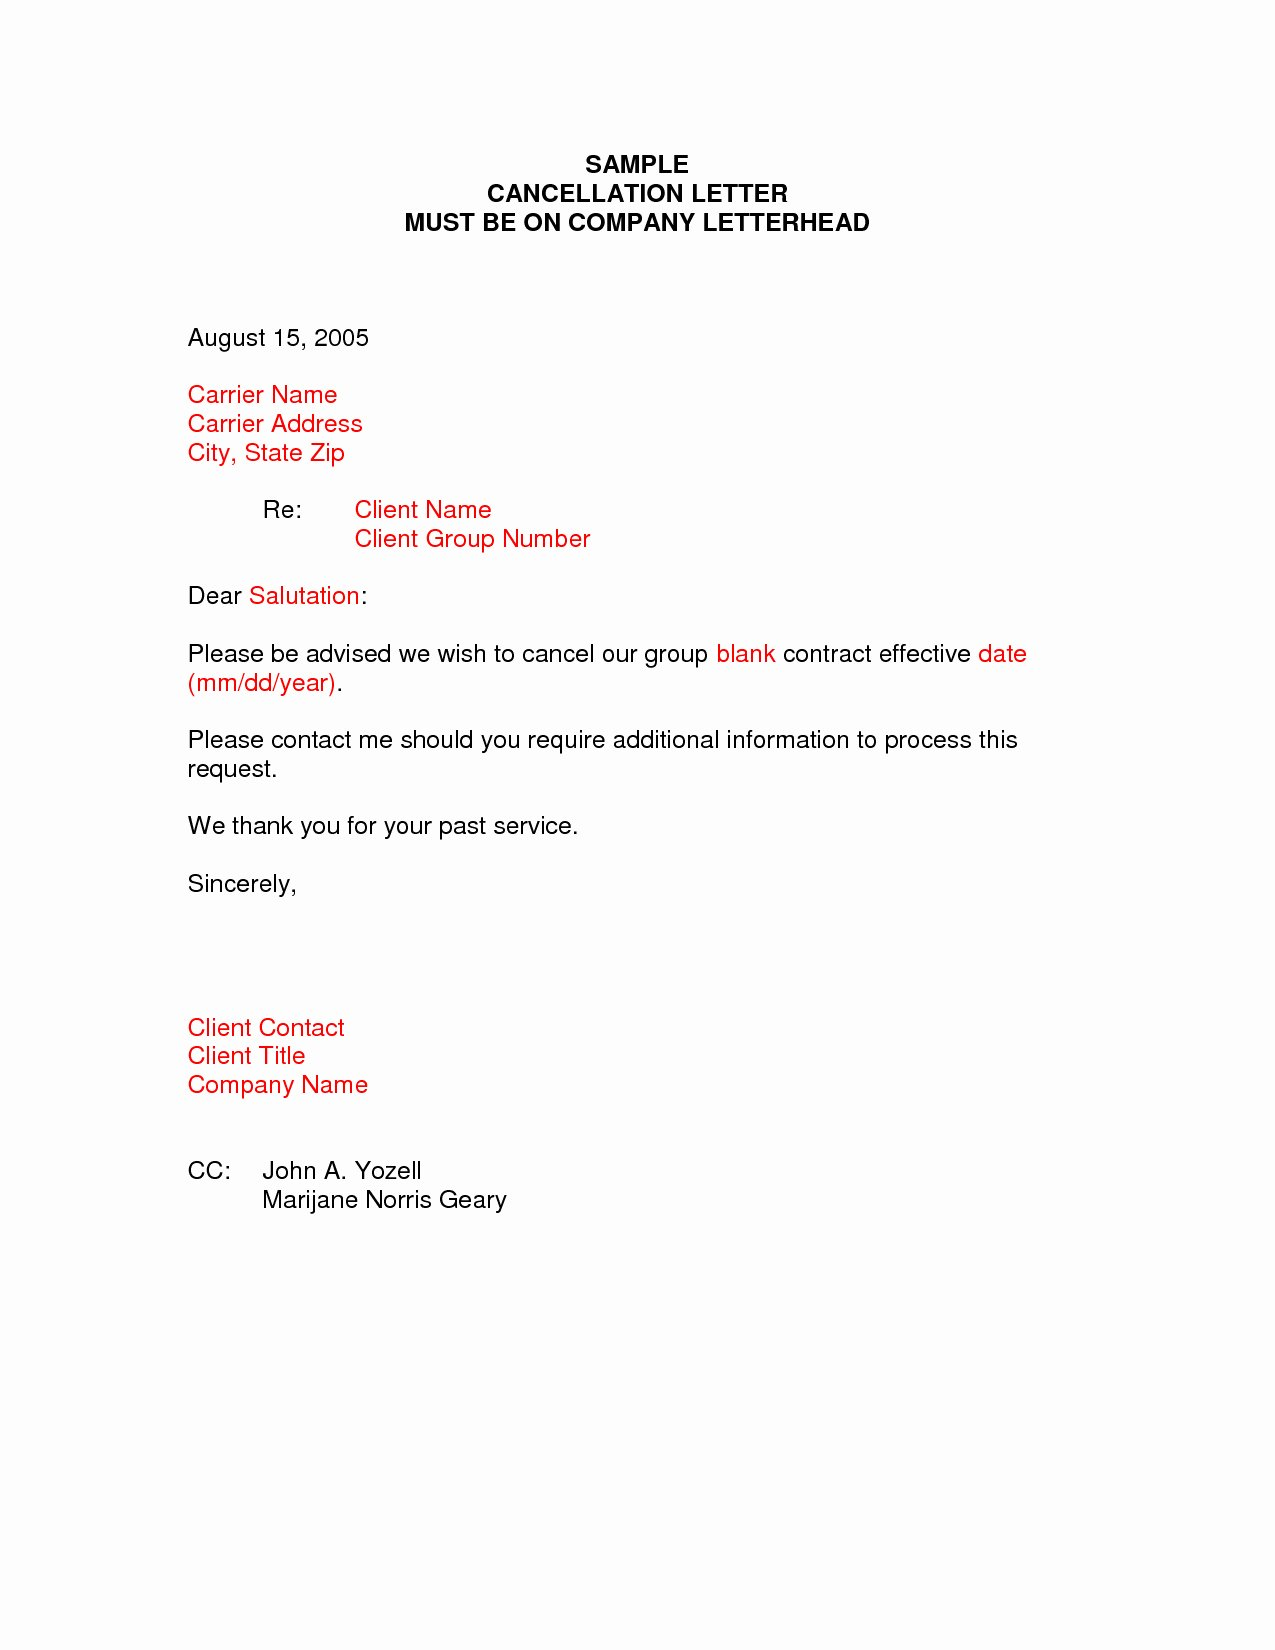 Timeshare Cancellation Letters Inspirational Timeshare Cancellation Letter Template Samples